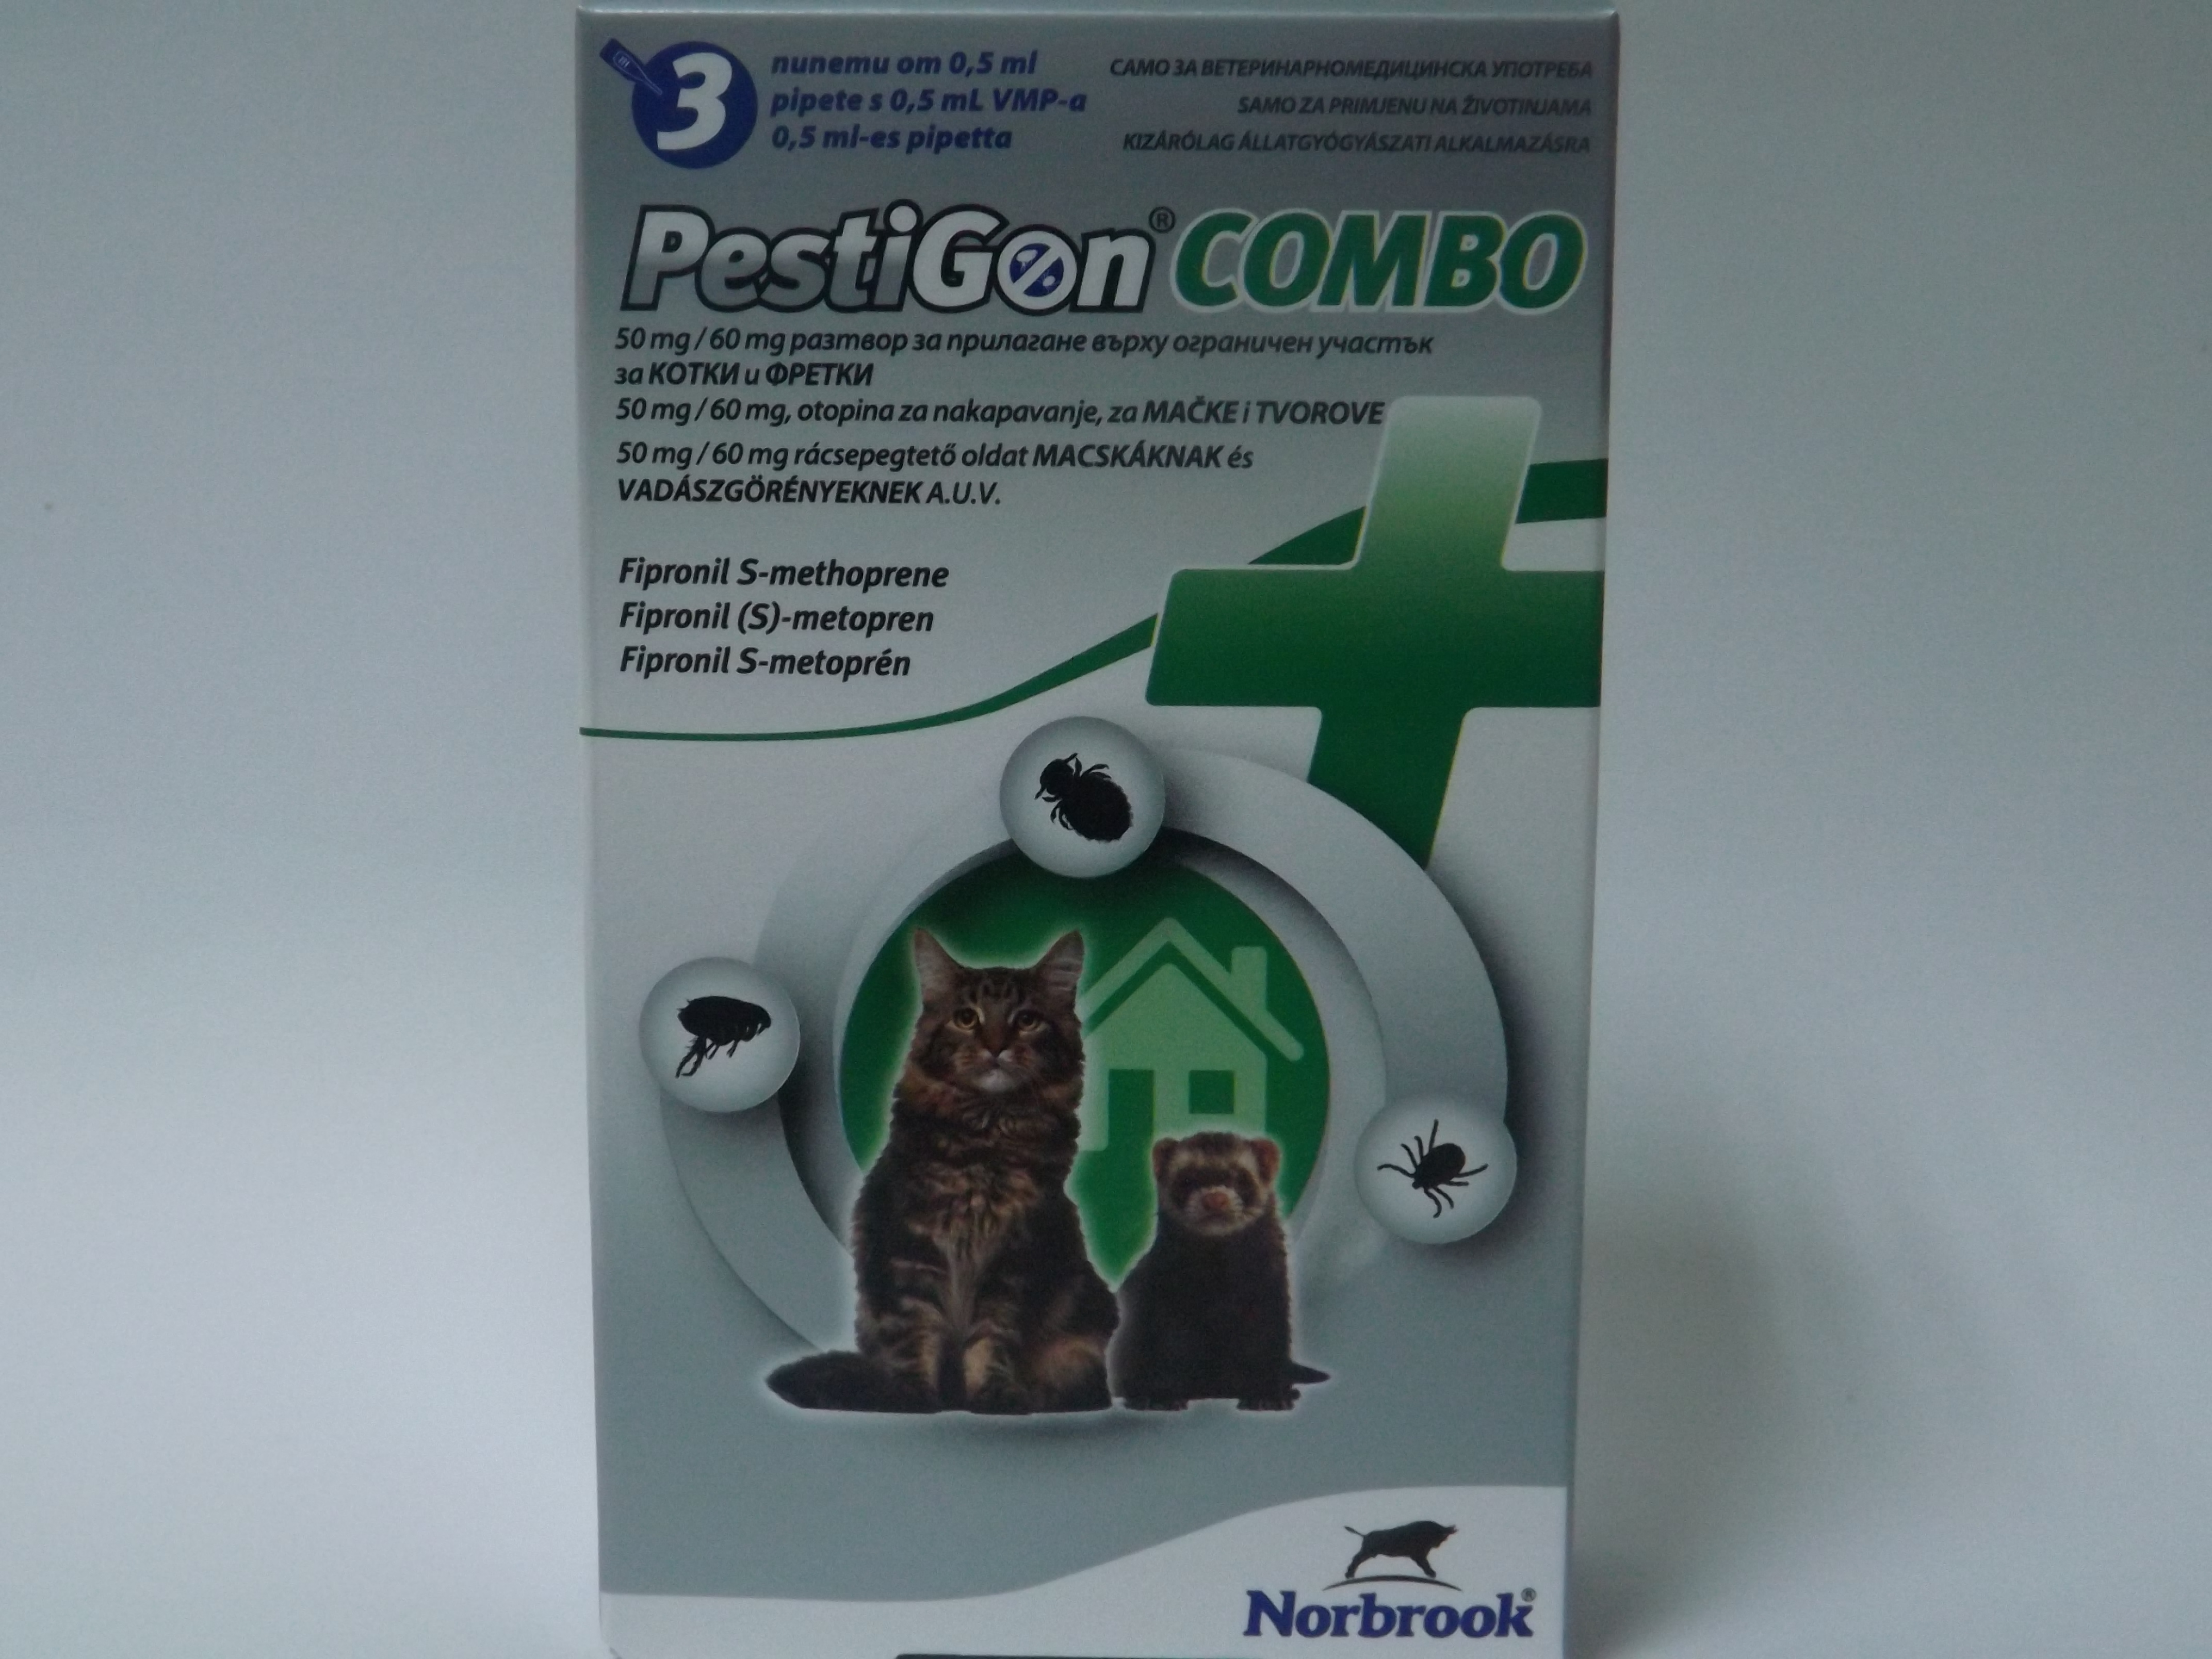 Pestigon Combo Cat.JPG